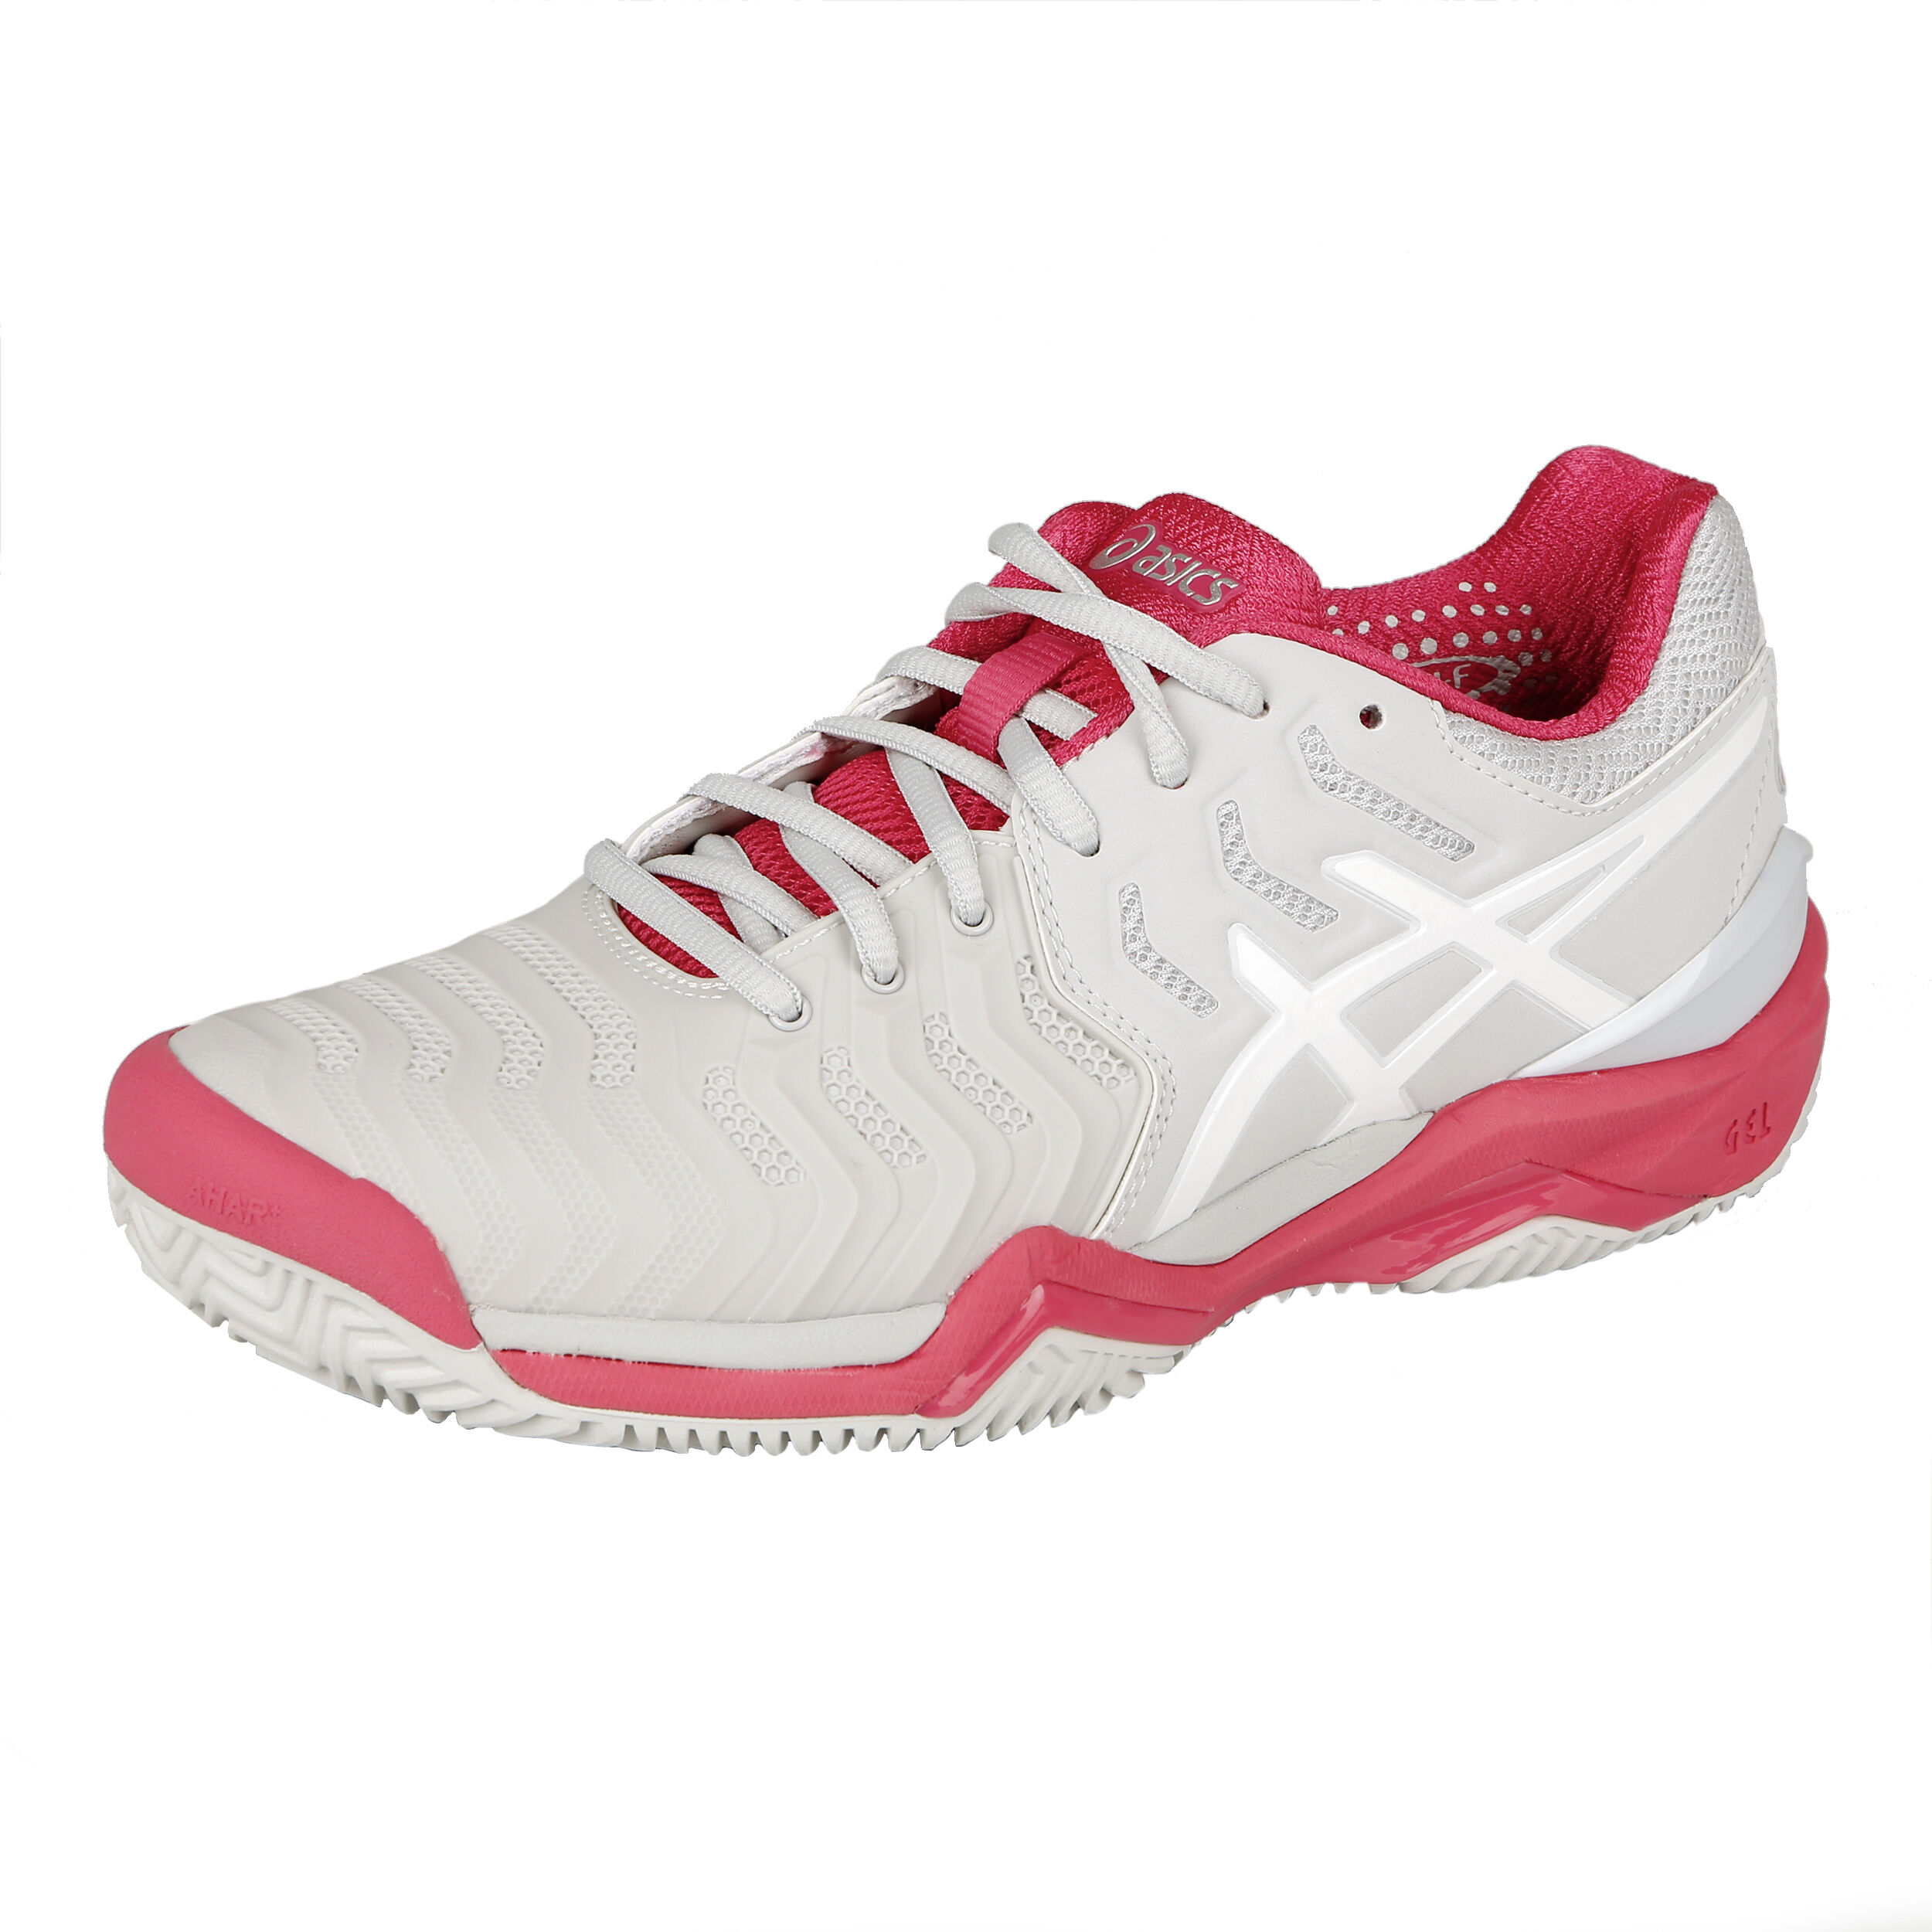 Asics Gel-Resolution 7 Clay Sandplatzschuh Damen - Hellgrau, Hellrot ...